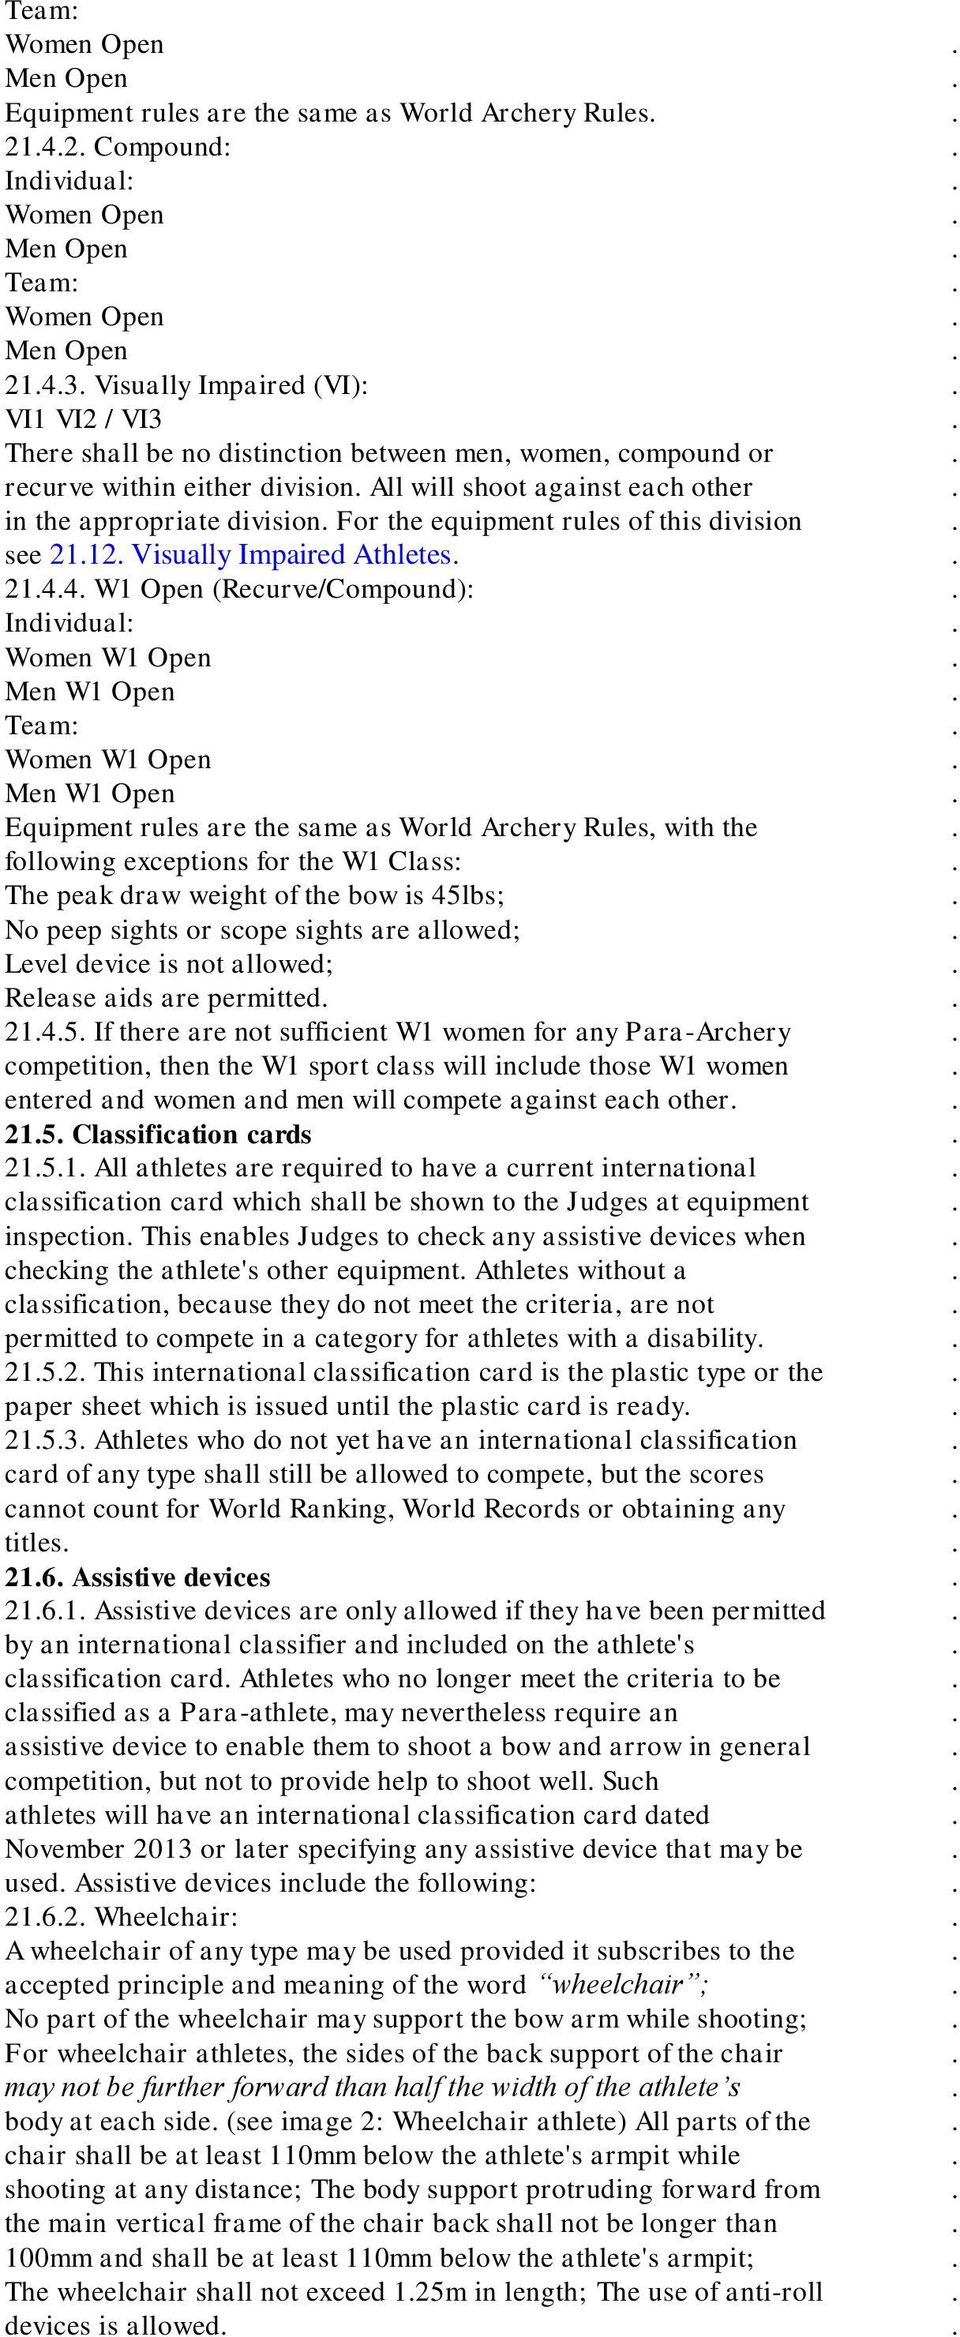 Visually Impaired Athletes 2144 W1 Open (Recurve/Compound): Individual: Women W1 Open Men W1 Open Team: Women W1 Open Men W1 Open Equipment rules are the same as World Archery Rules, with the